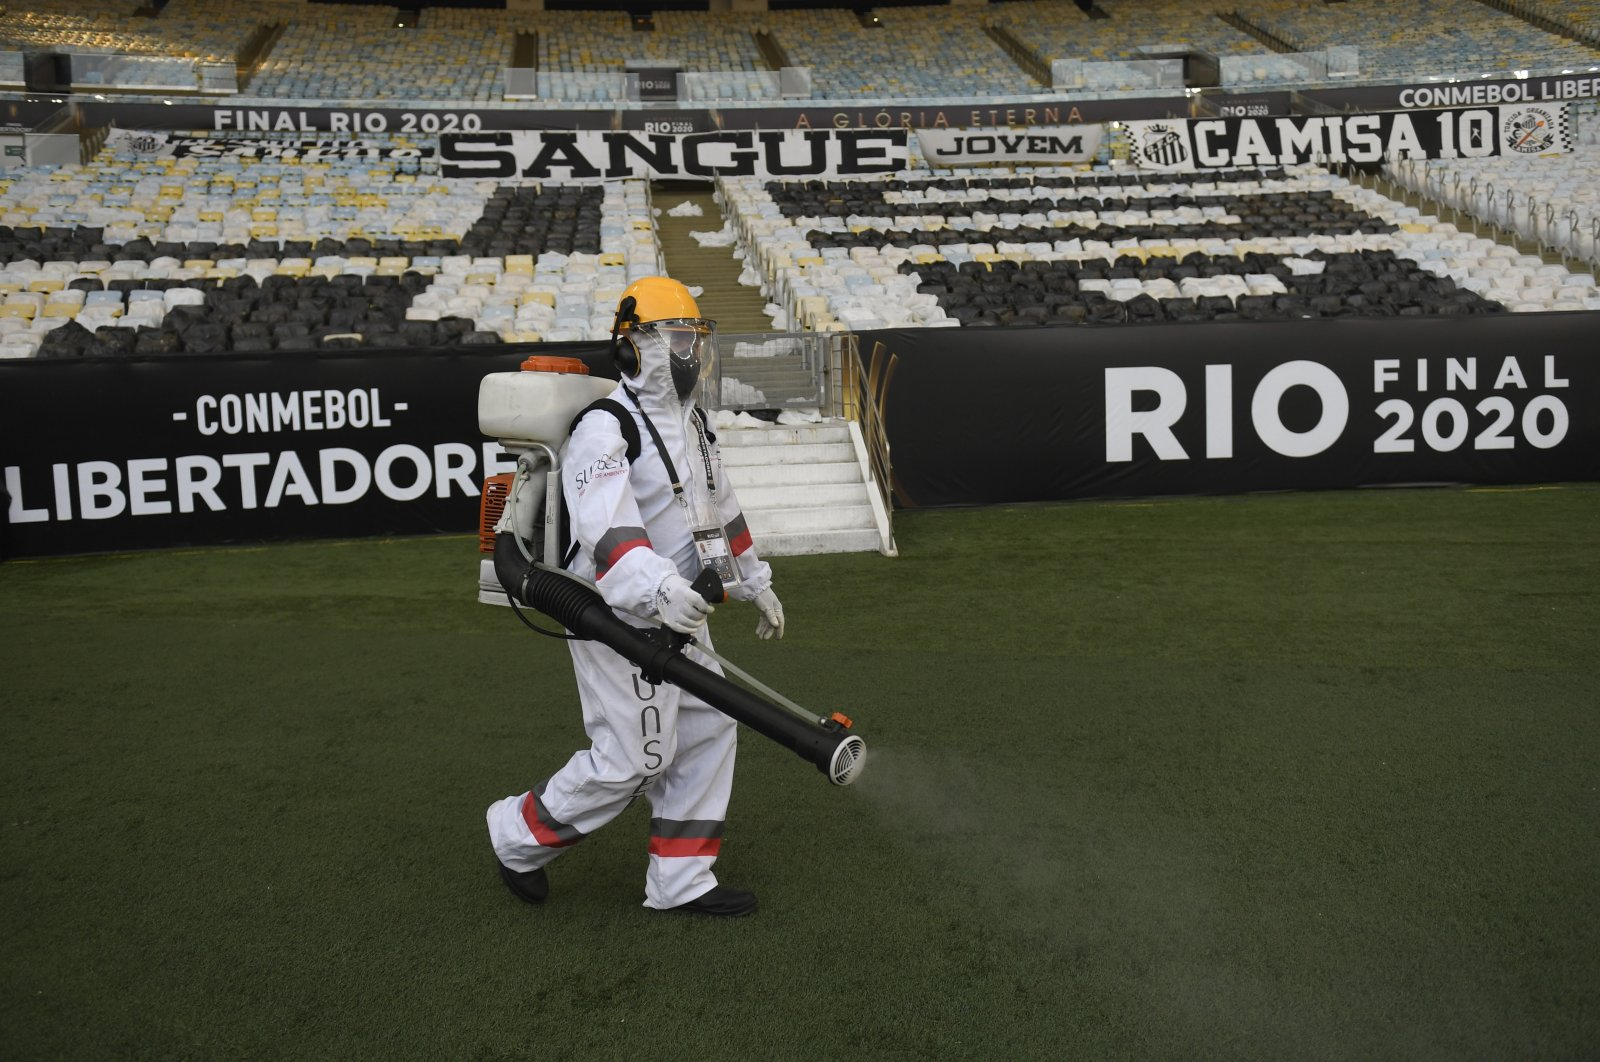 A worker wearing protective gear disinfects the pitch as a precaution against the coronavirus during the half break of a Copa Libertadores final soccer match between Brazil's Palmeiras and Brazil's Santos at the Maracana stadium in Rio de Janeiro, Brazil, Jan. 30, 2021. (AP Photo)